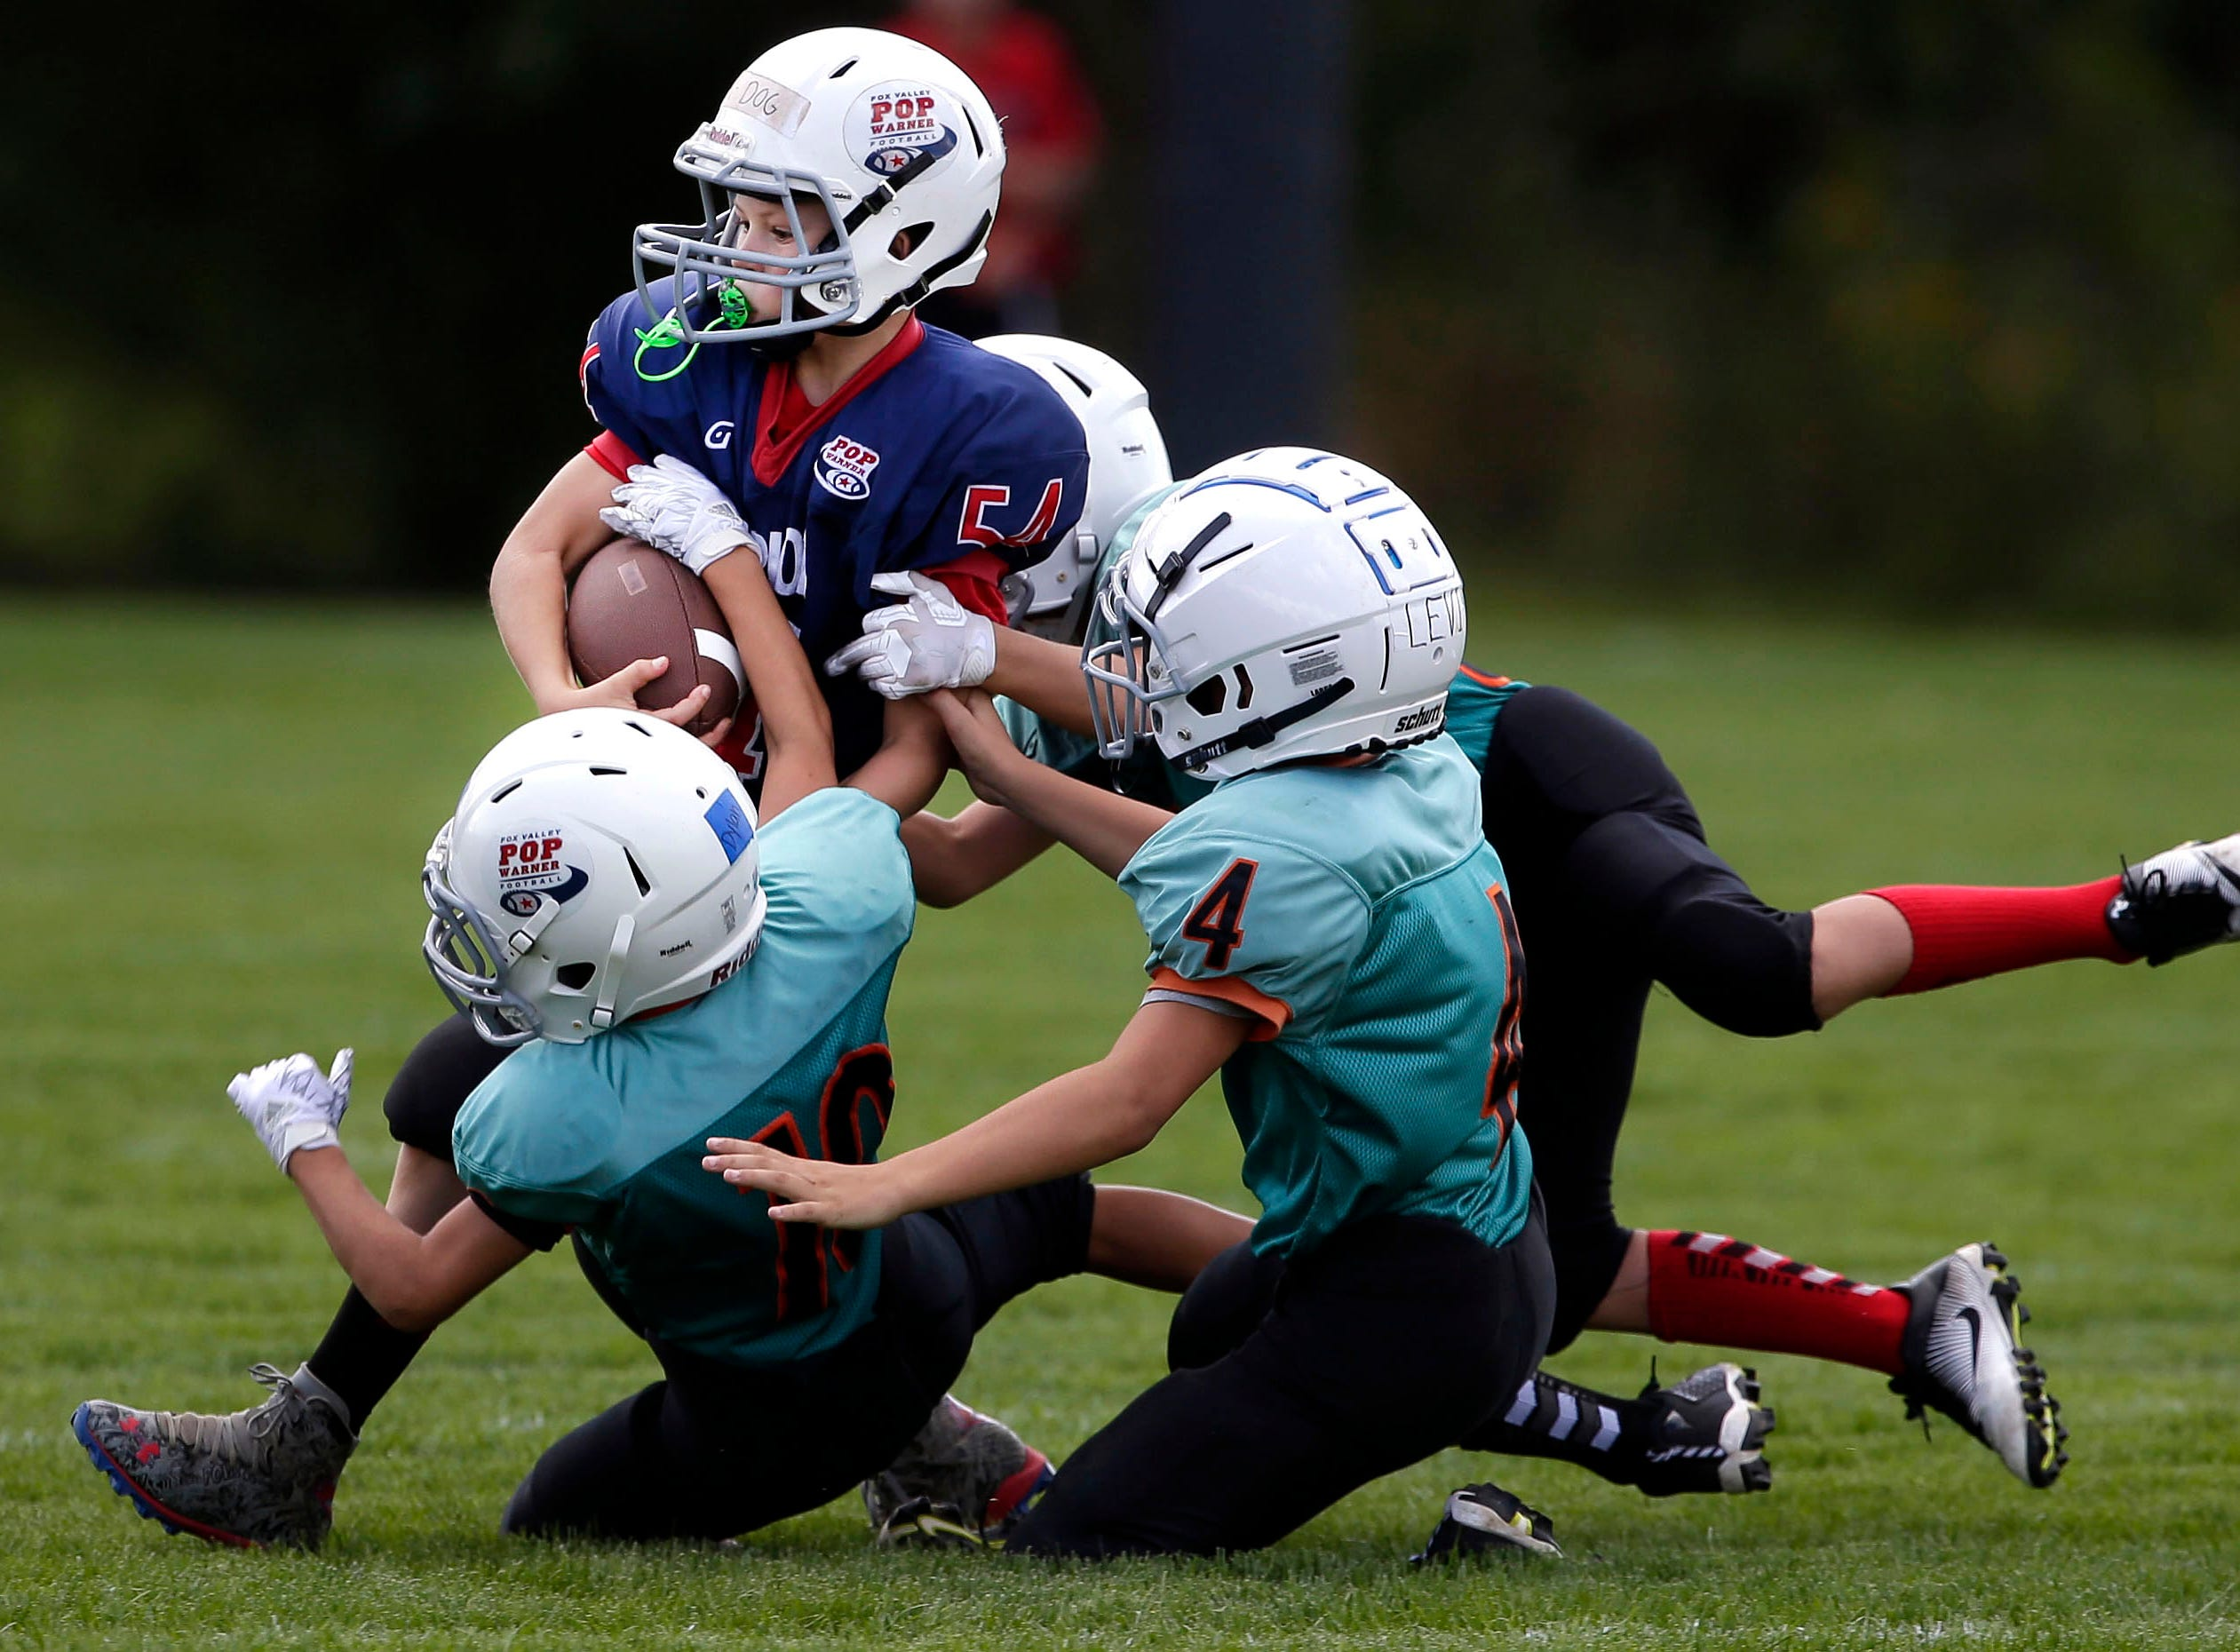 Kolten Jens of the Patriots is surrounded by the Rockets defense as Fox Valley Pop Warner Football opens the season Saturday, September 8, 2018, at Plamann Park in Grand Chute, Wis.Ron Page/USA TODAY NETWORK-Wisconsin